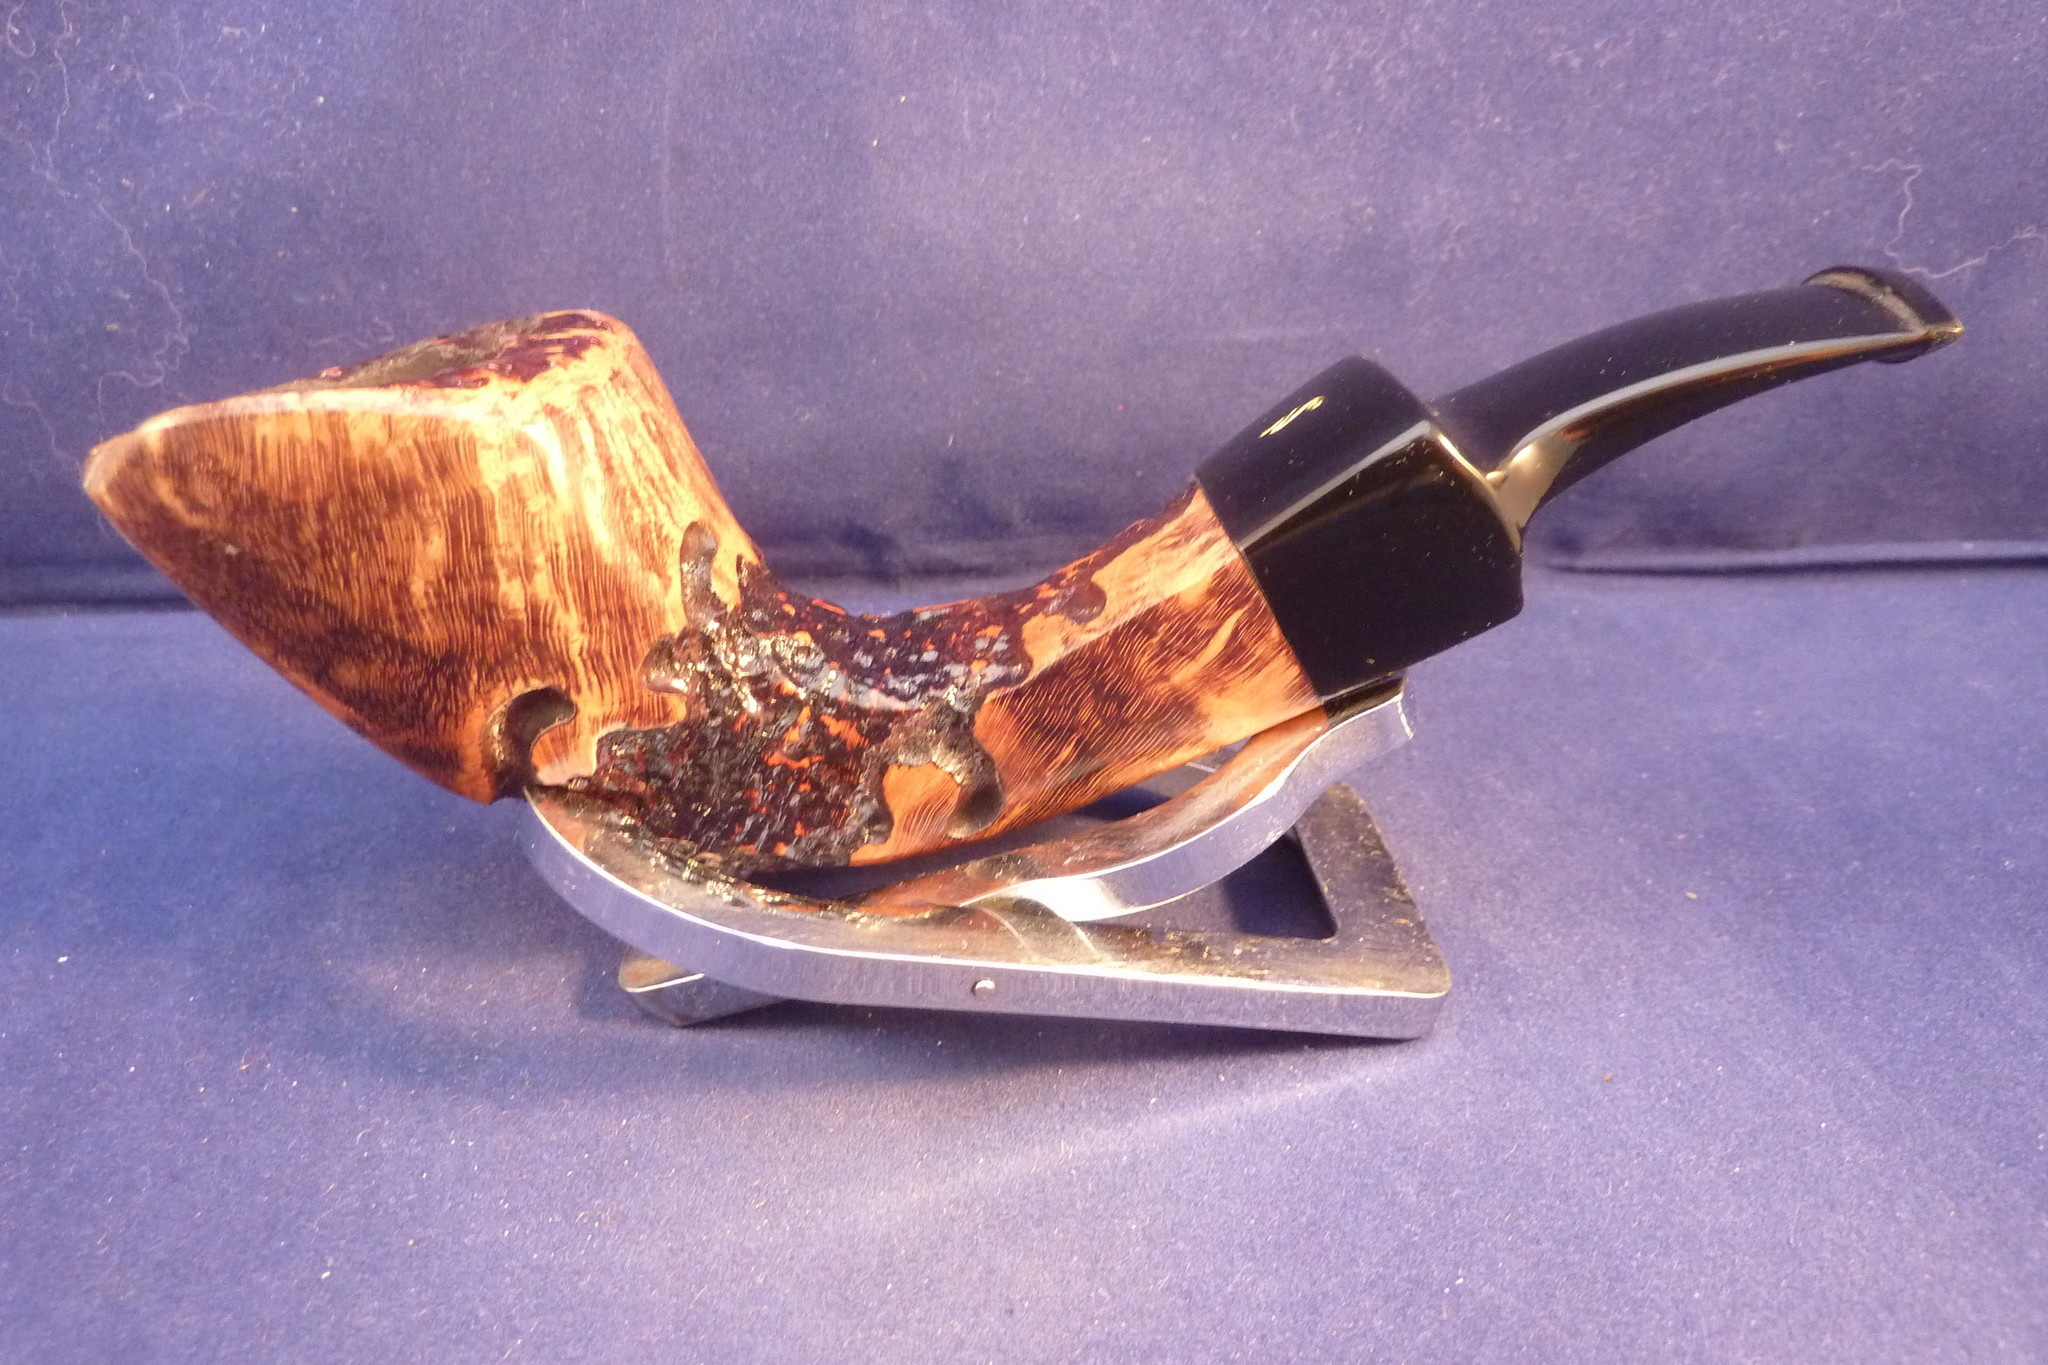 Sold Smoking Pipe Nording Hunting Serie 2014 Crocodile Rustic